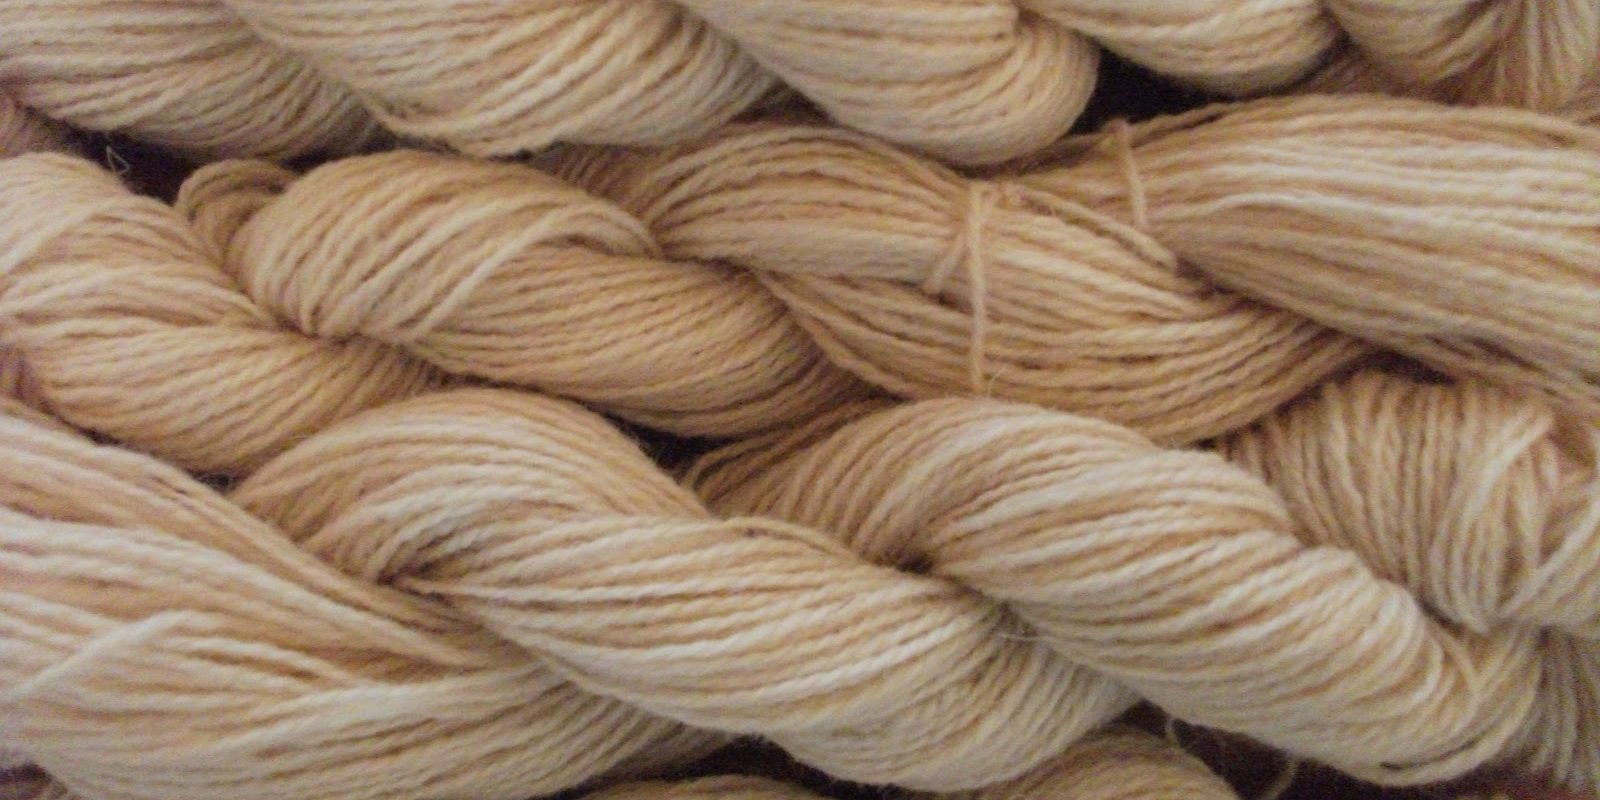 PYMA wants the government to address the issue of yarn and fibre tariffs